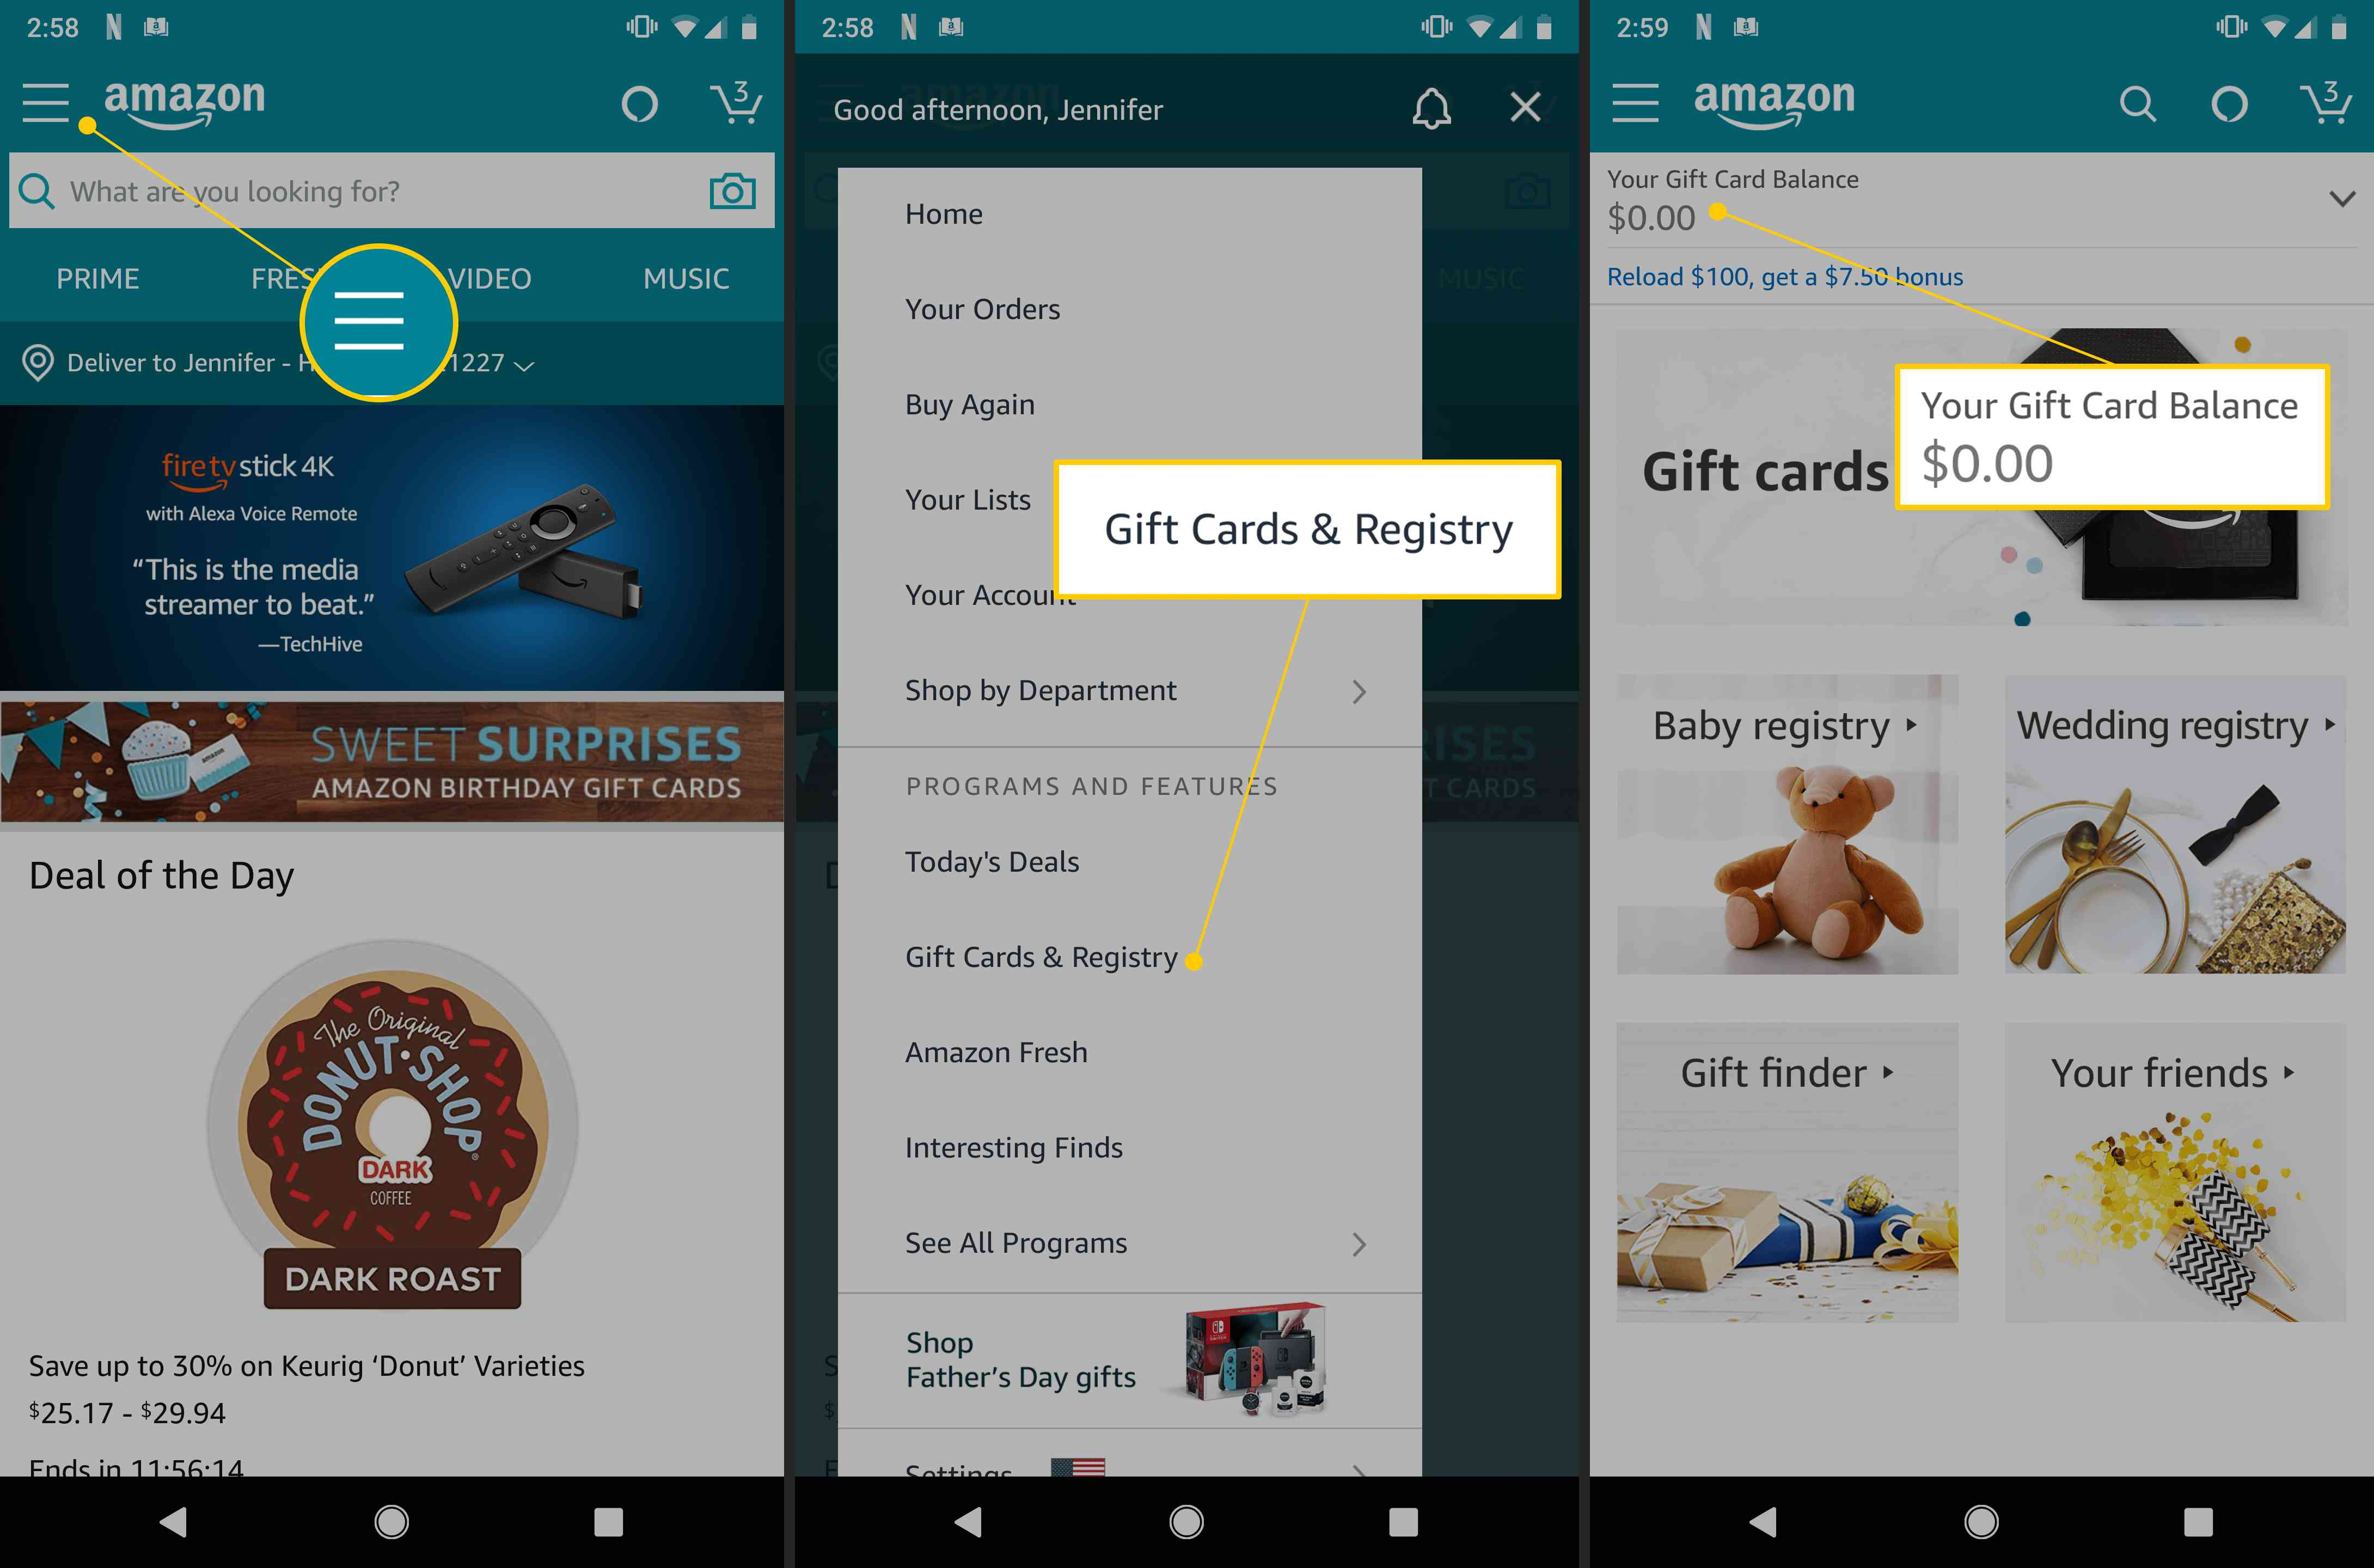 Amazon mobile app's Menu button, Gift Cards & Registry button, and Your Gift Card Balance